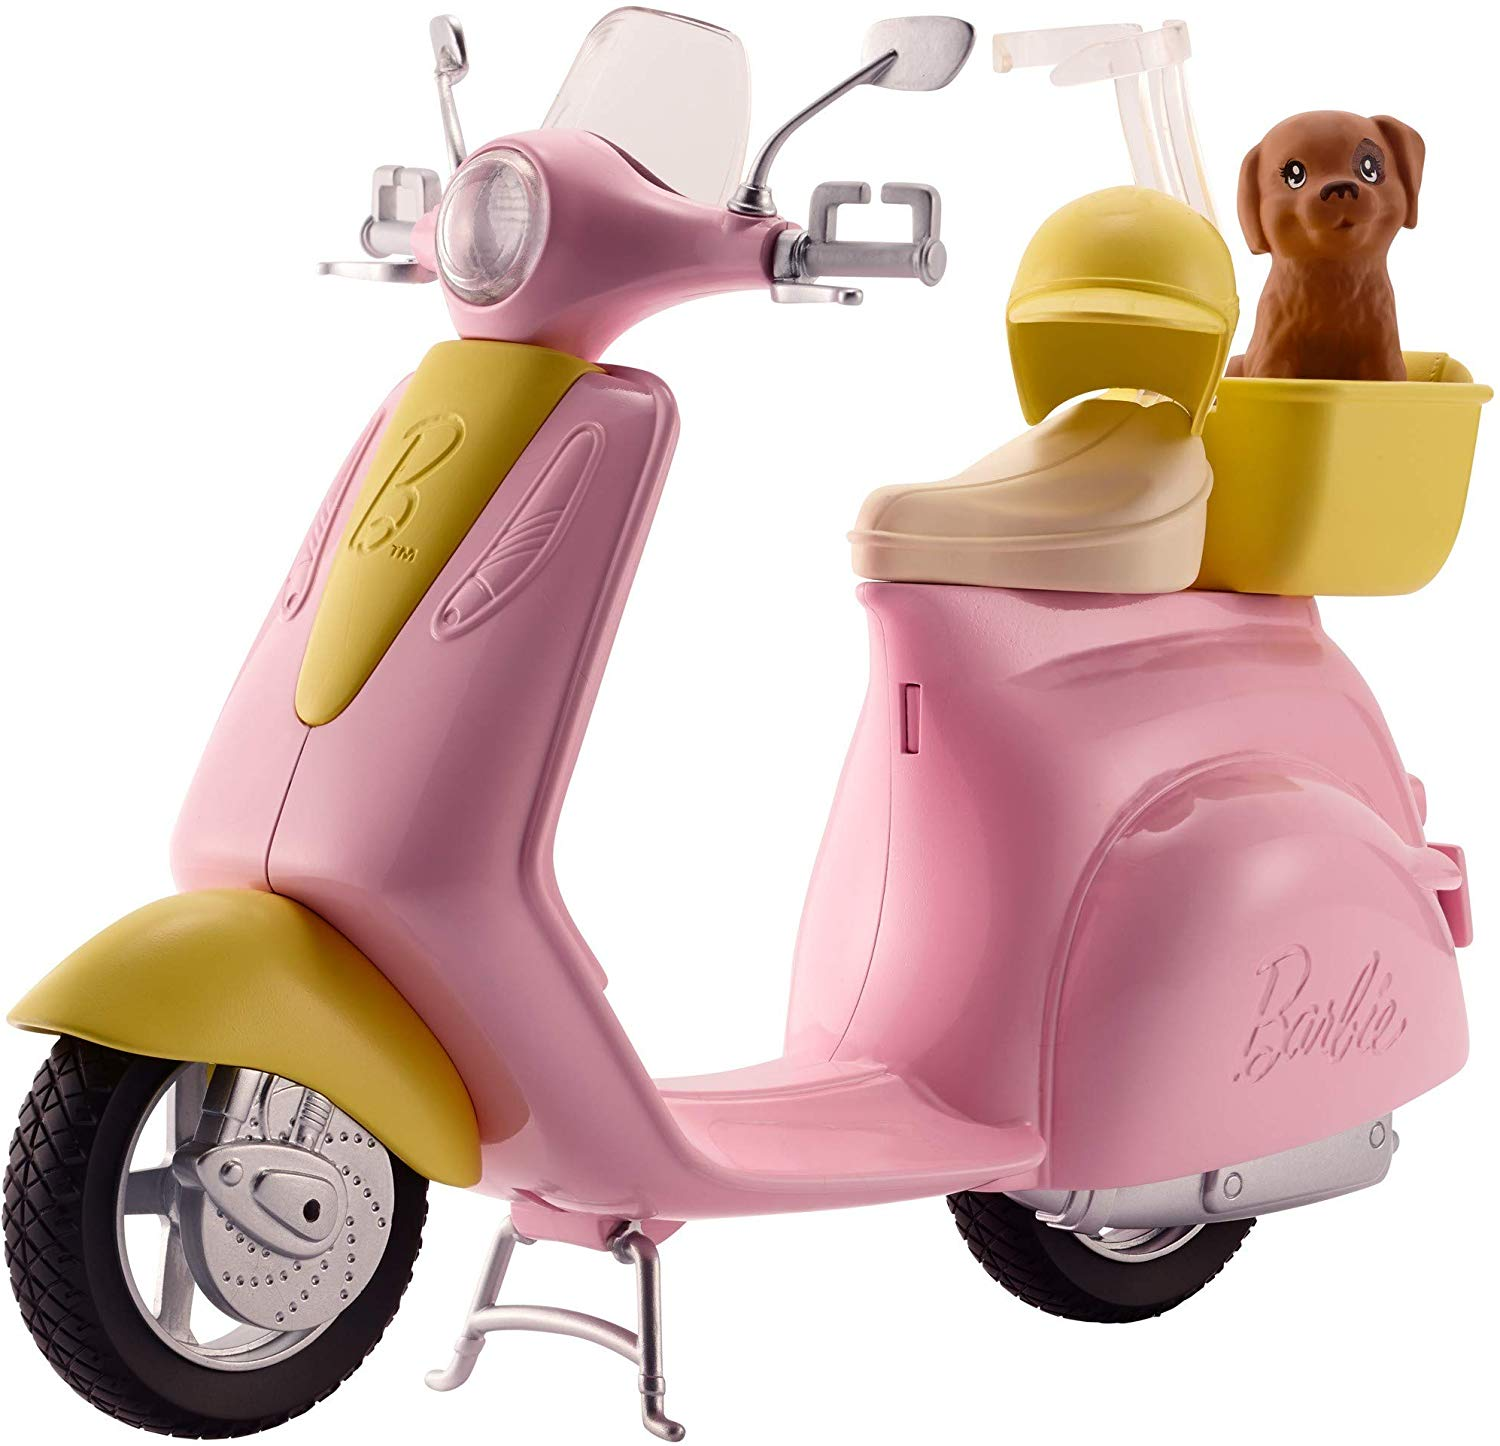 Barbie Scooter | Top Toys